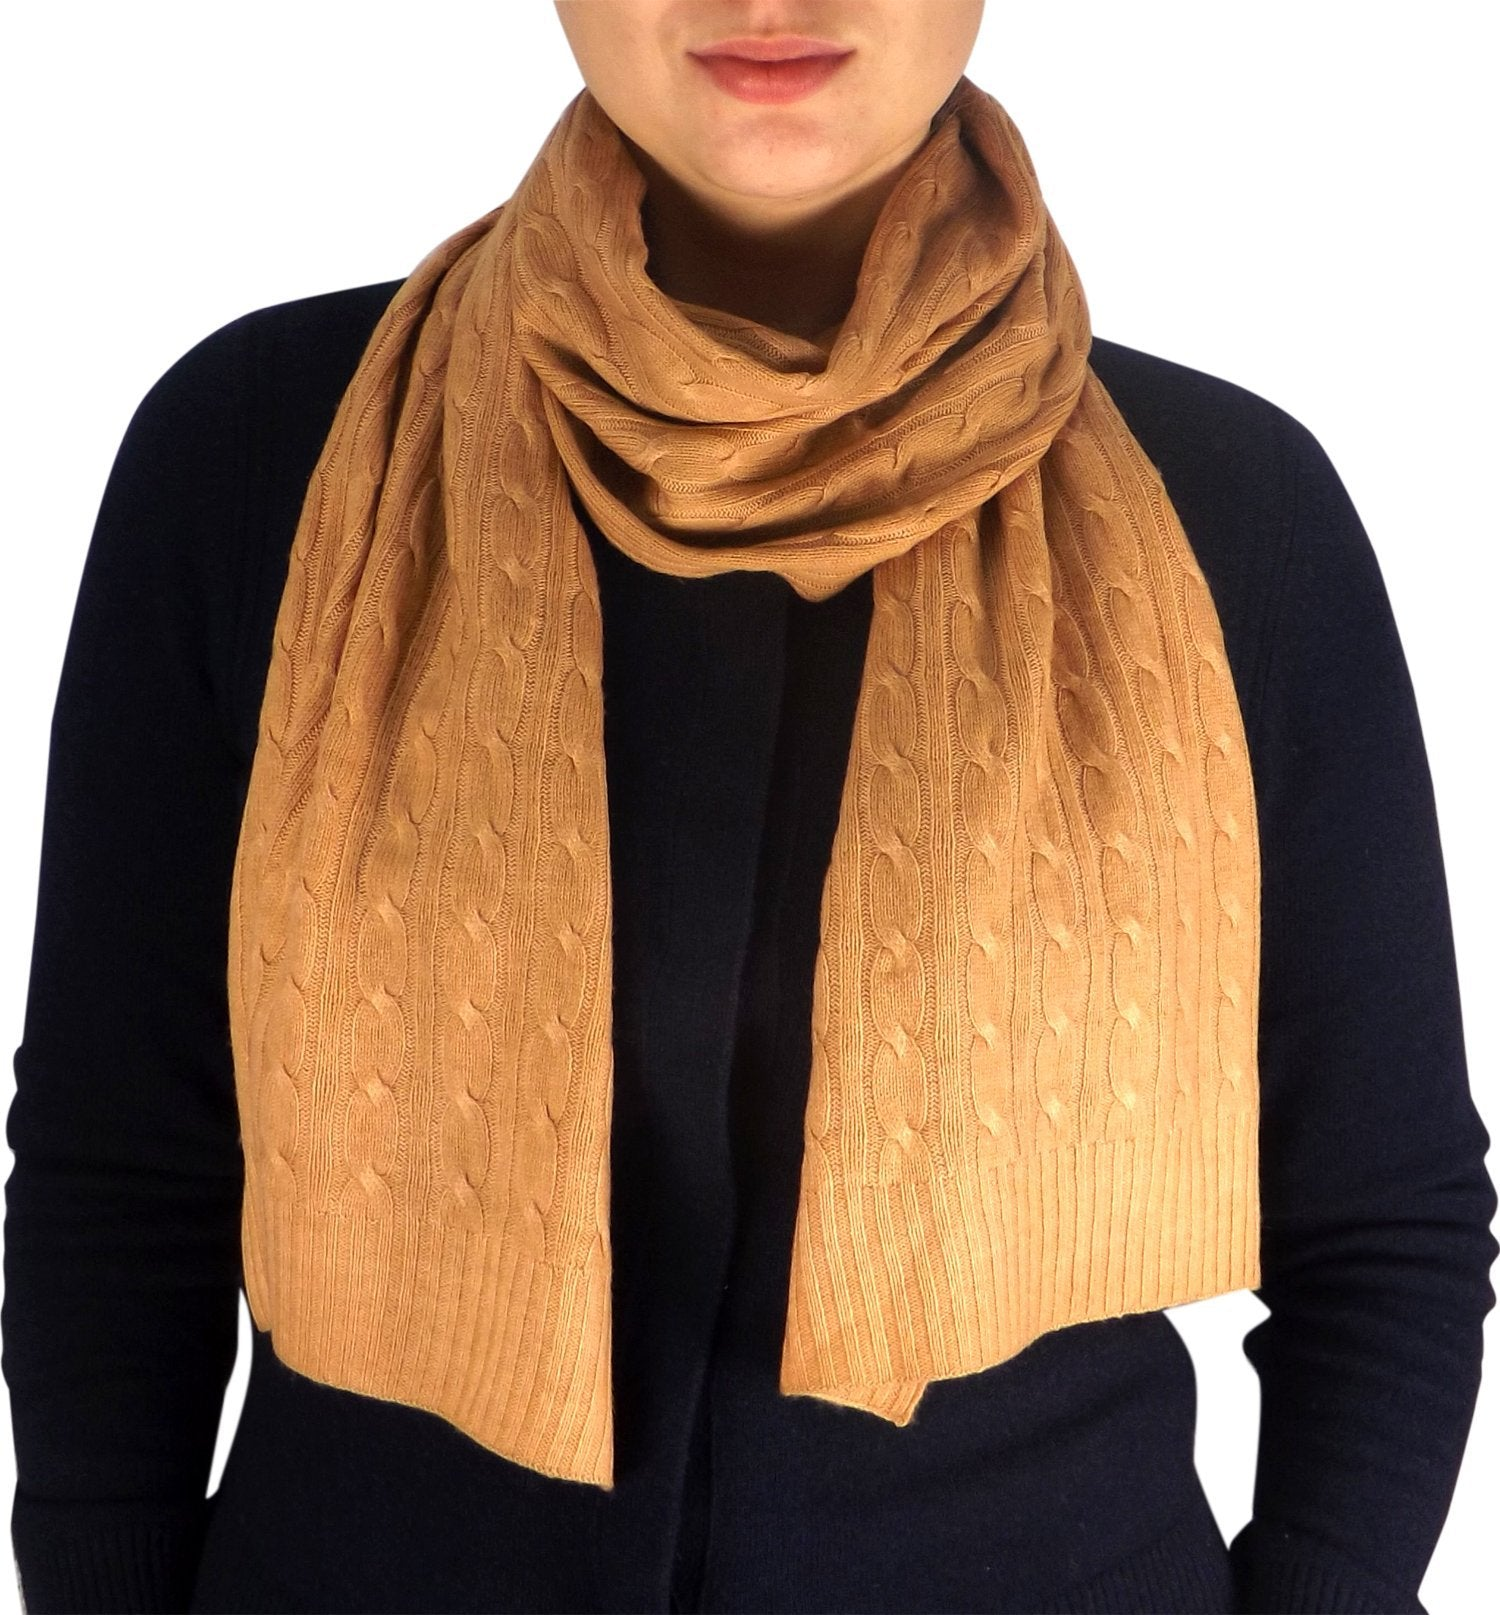 Wool Cashmere Lightweight Cable Knit Exclusive All